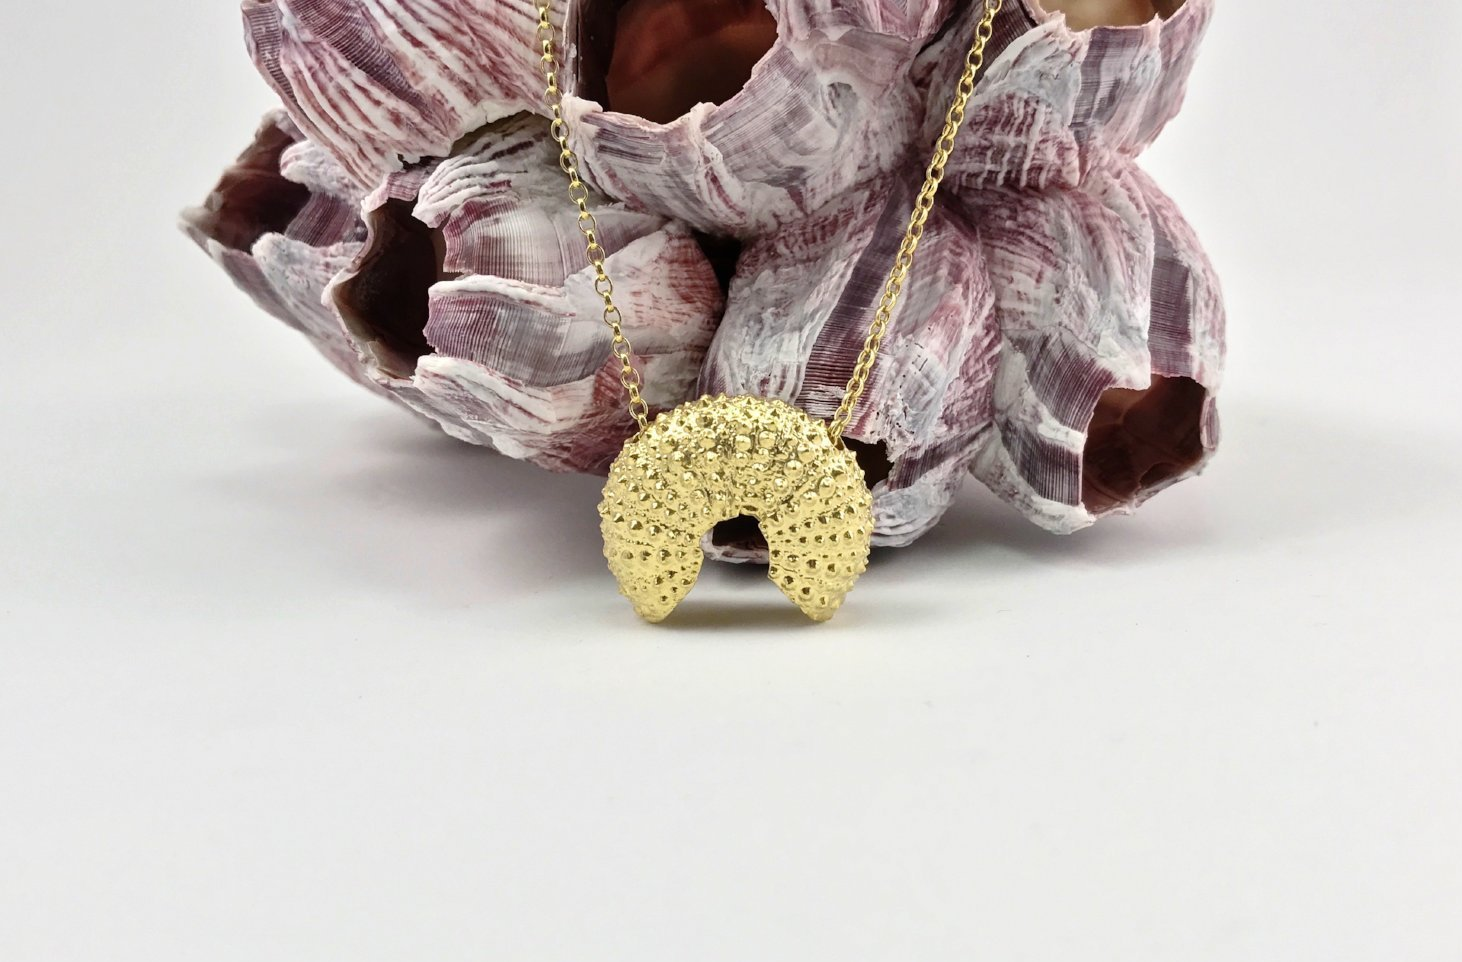 Broken Sea Urchin necklace - gold plated - Jennifer Kinnear Jewellery - Ocean Collection